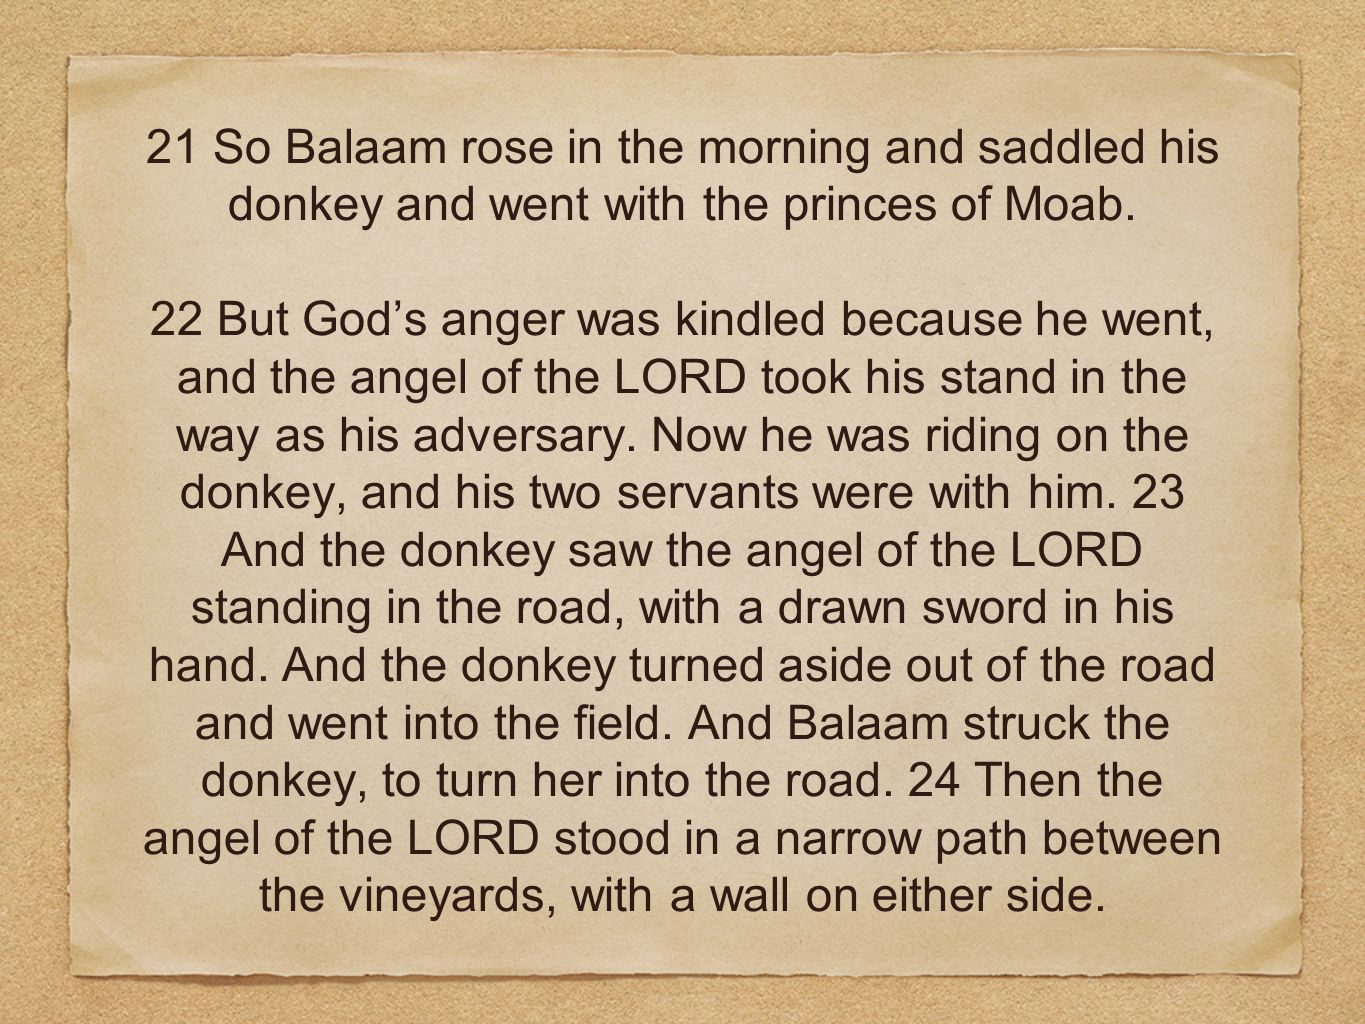 21 So Balaam rose in the morning and saddled his donkey and went with the princes of Moab.